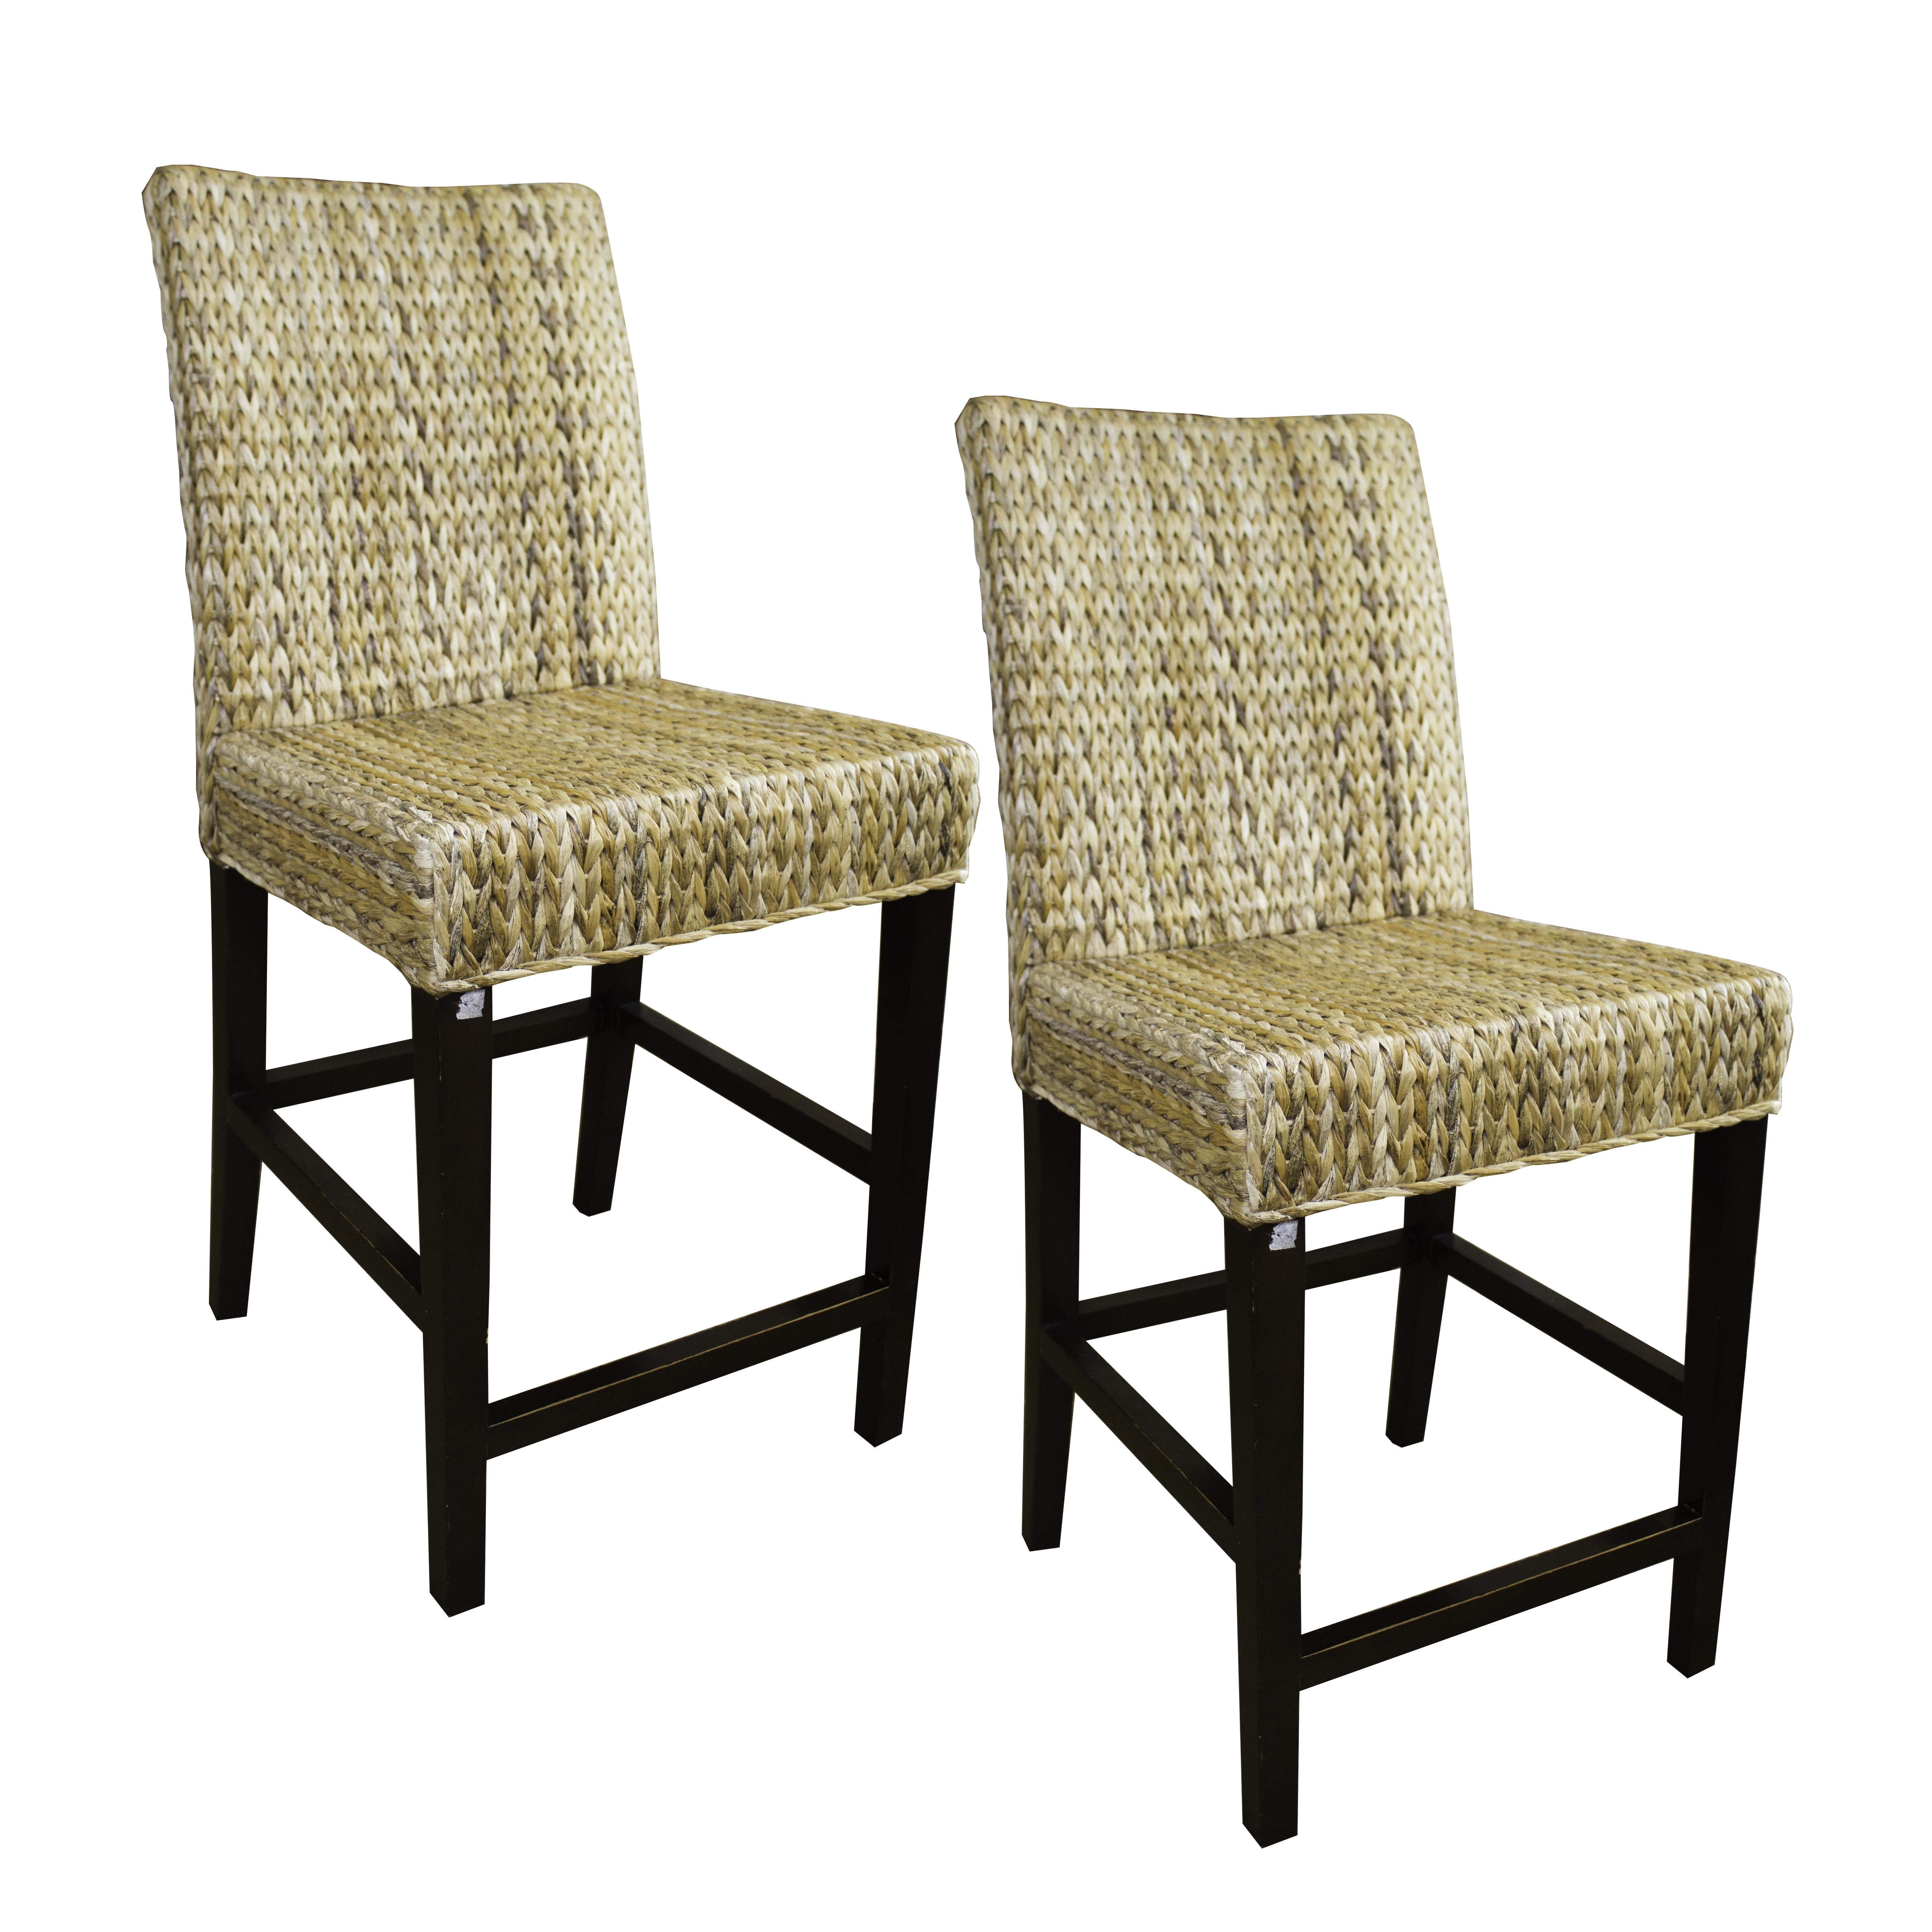 Pair Of Seagrass Counter Height Chairs ...